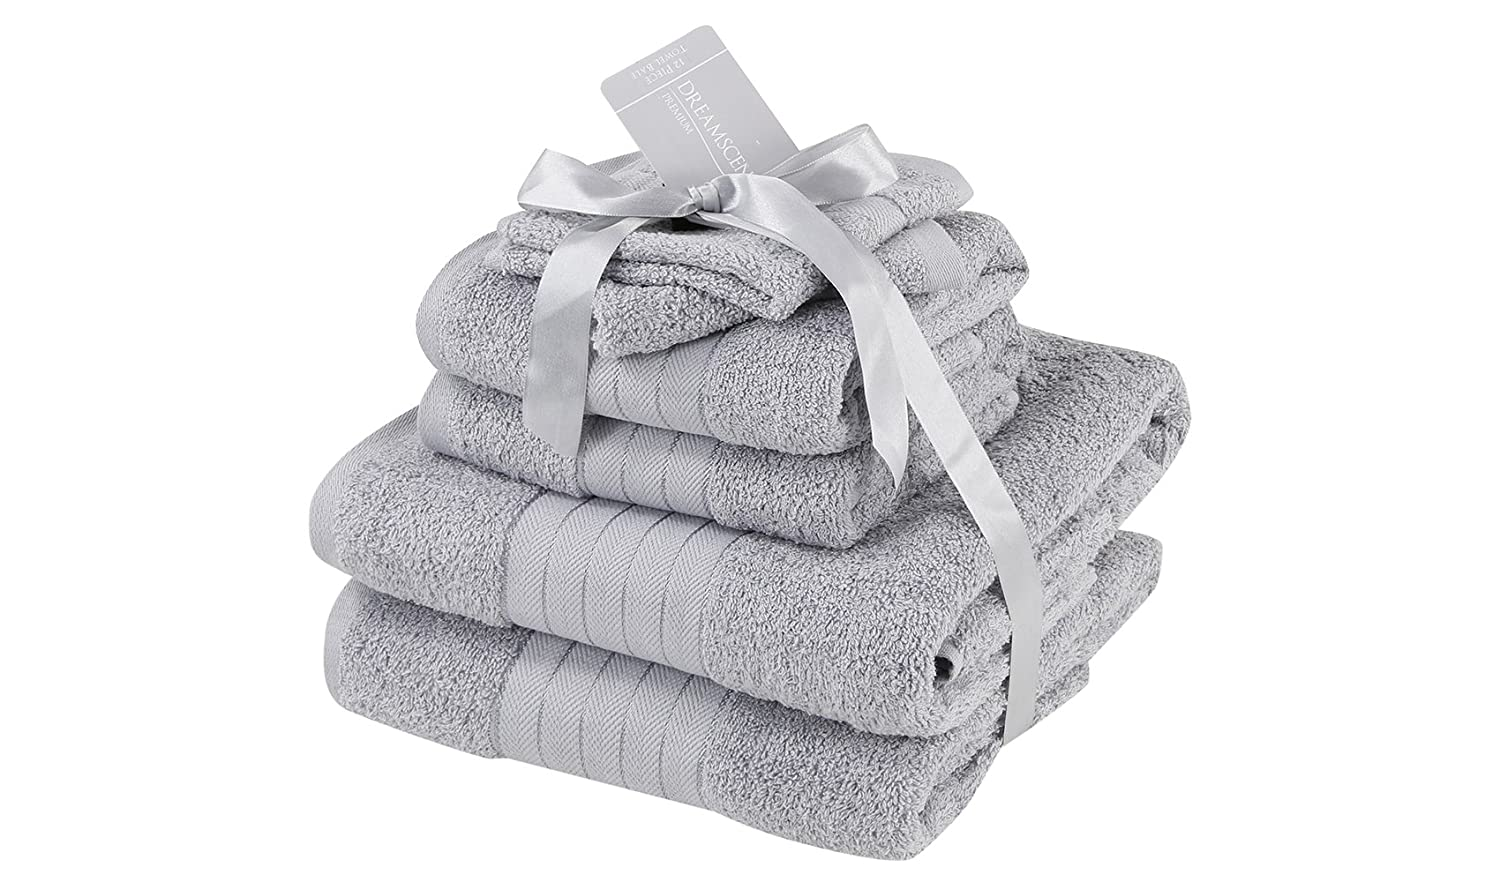 Dreamscene Luxury Super Soft 6 Piece Hand Bath Towel Bale 100% Egyptian Cotton Silver, 485 gsm Pin Mill Textiles Ltd 5027434099122